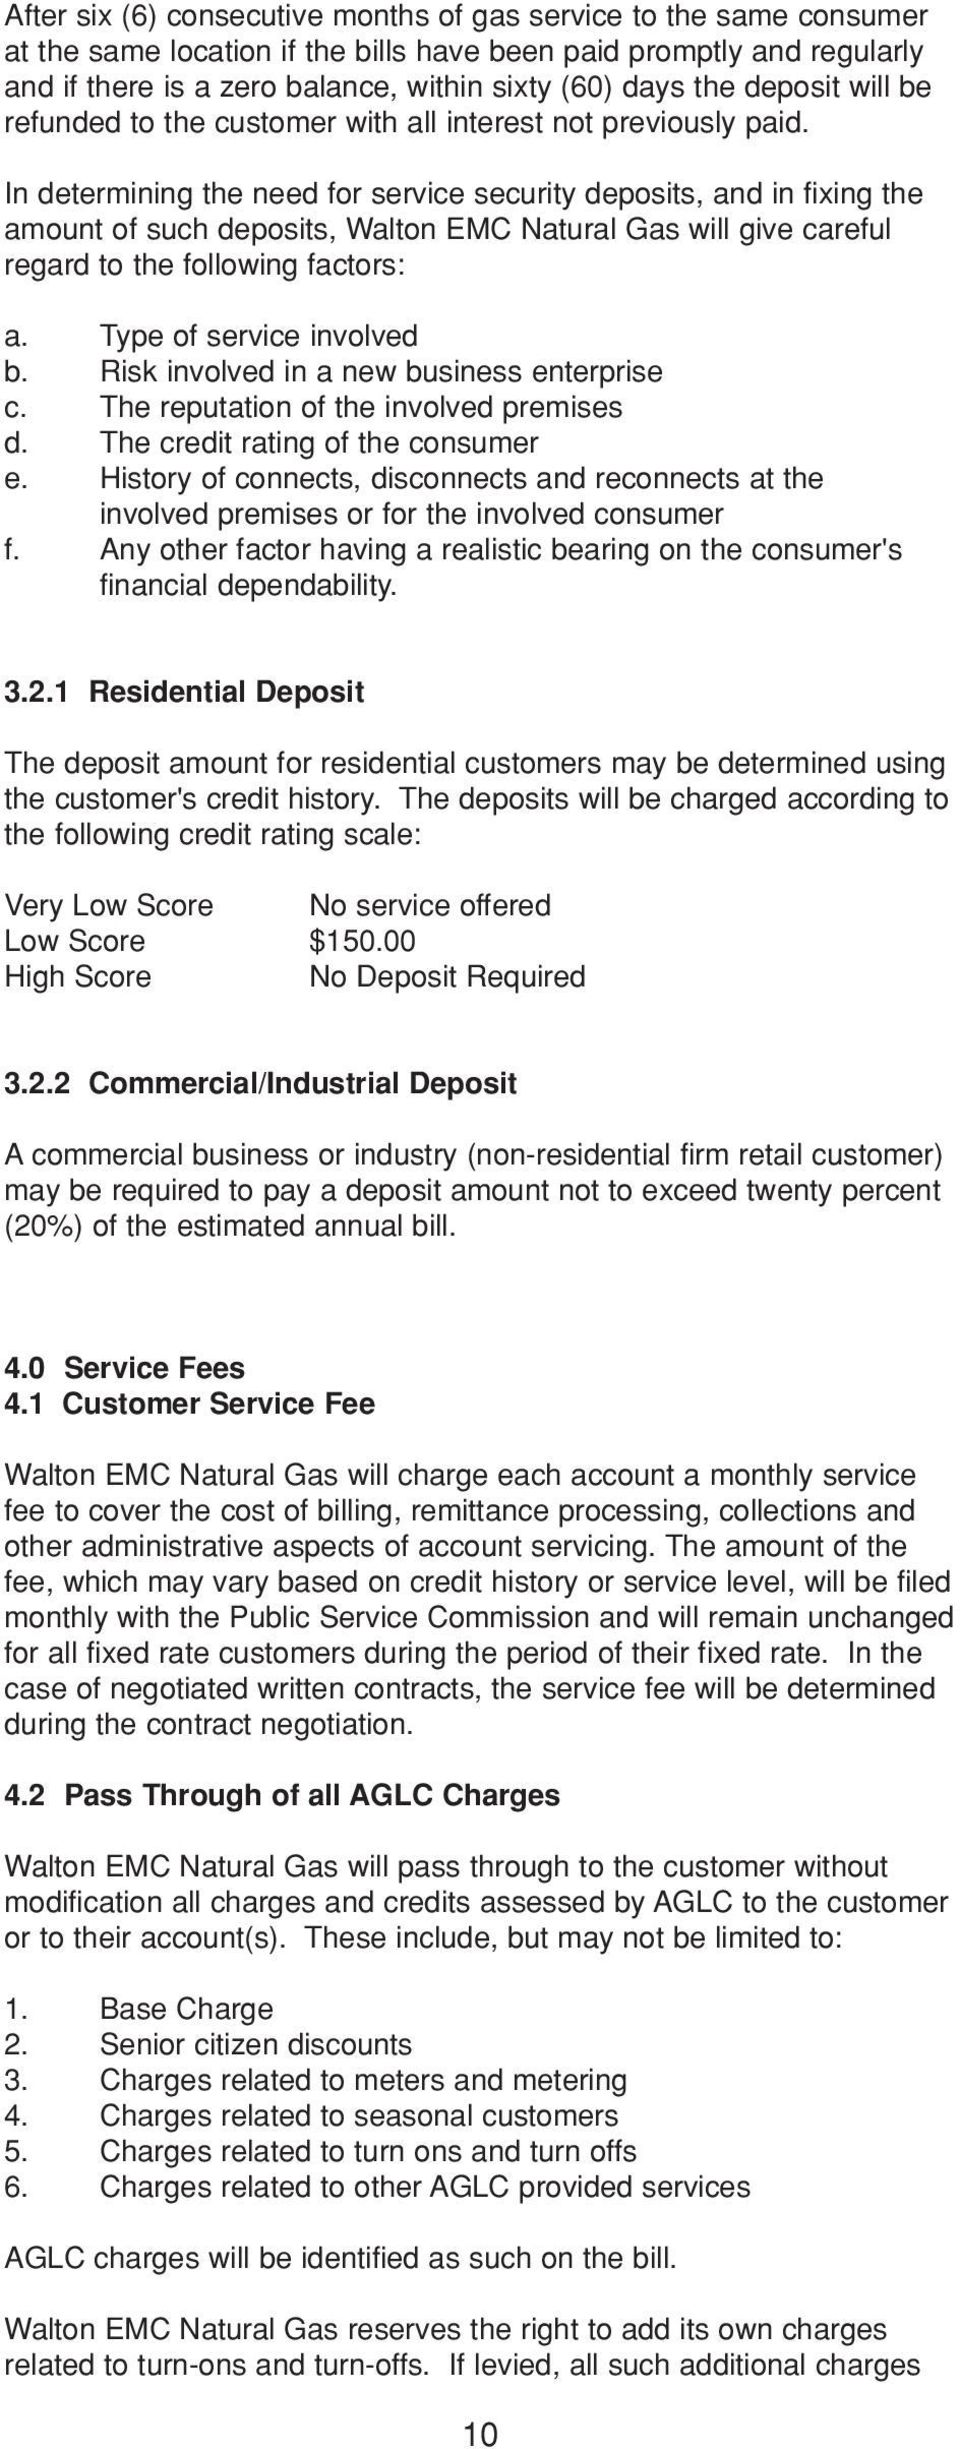 In determining the need for service security deposits, and in fixing the amount of such deposits, Walton EMC Natural Gas will give careful regard to the following factors: a.